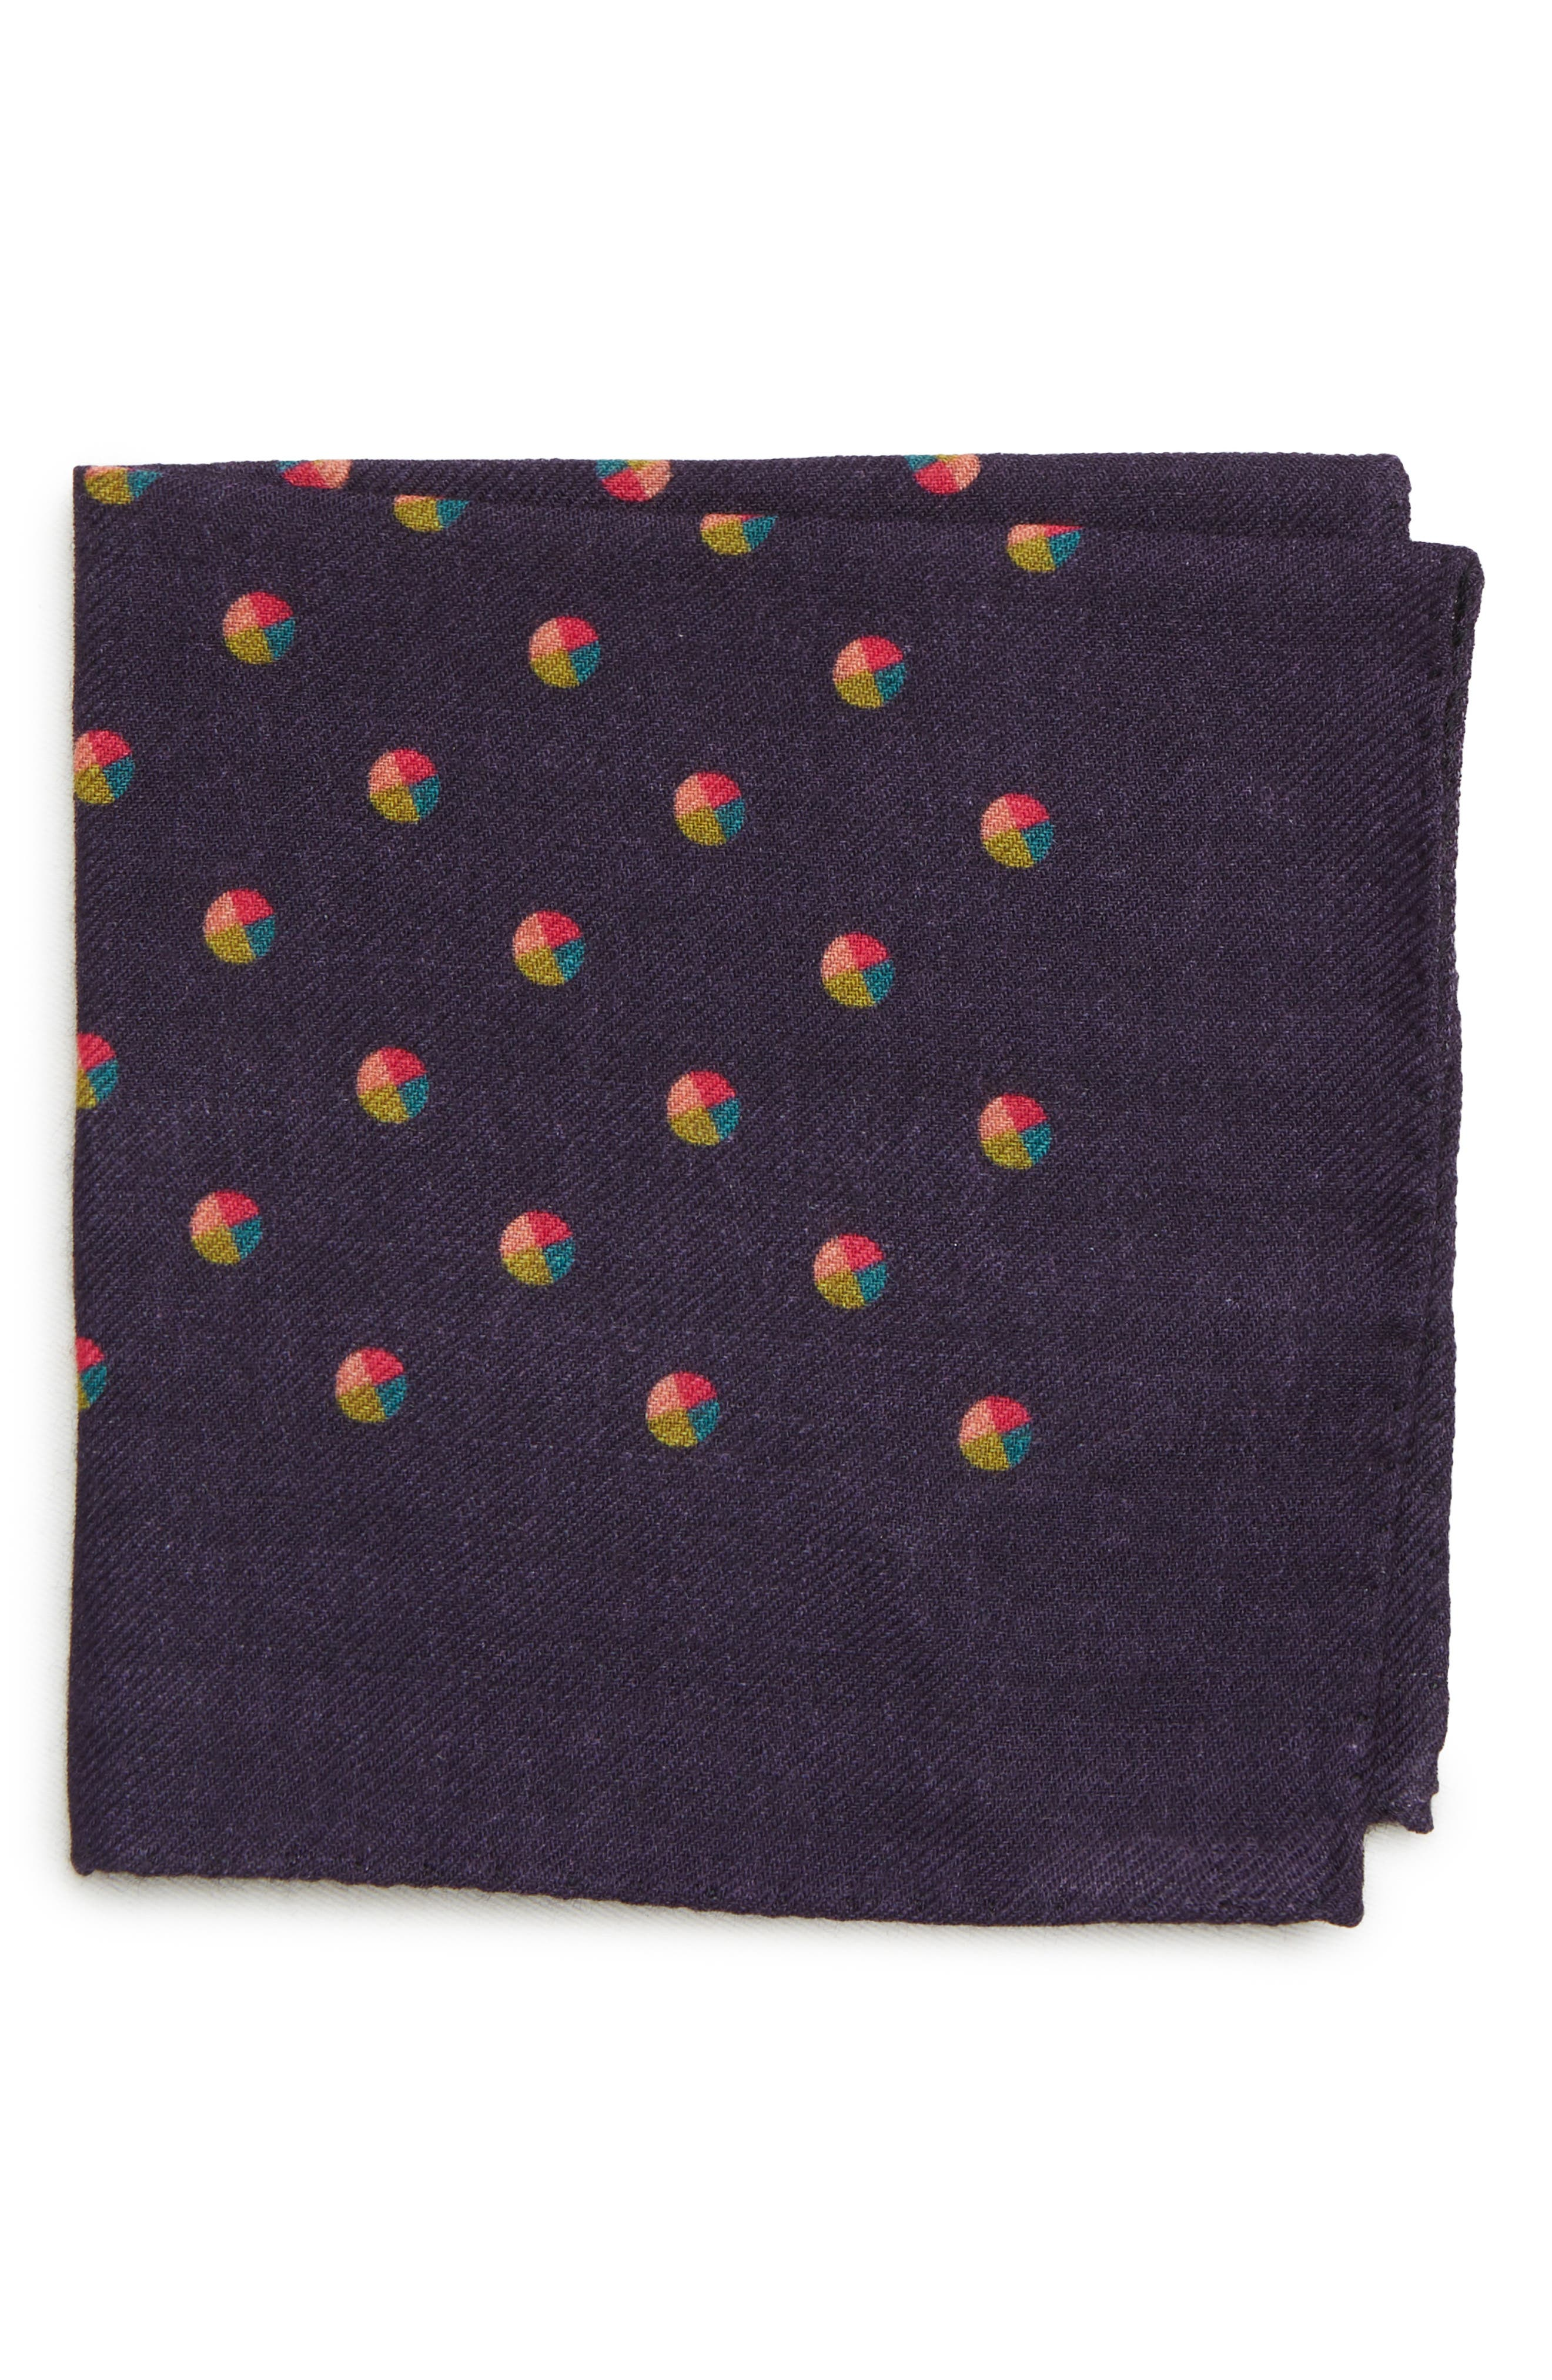 Dot Wool Pocket Square,                             Main thumbnail 1, color,                             400